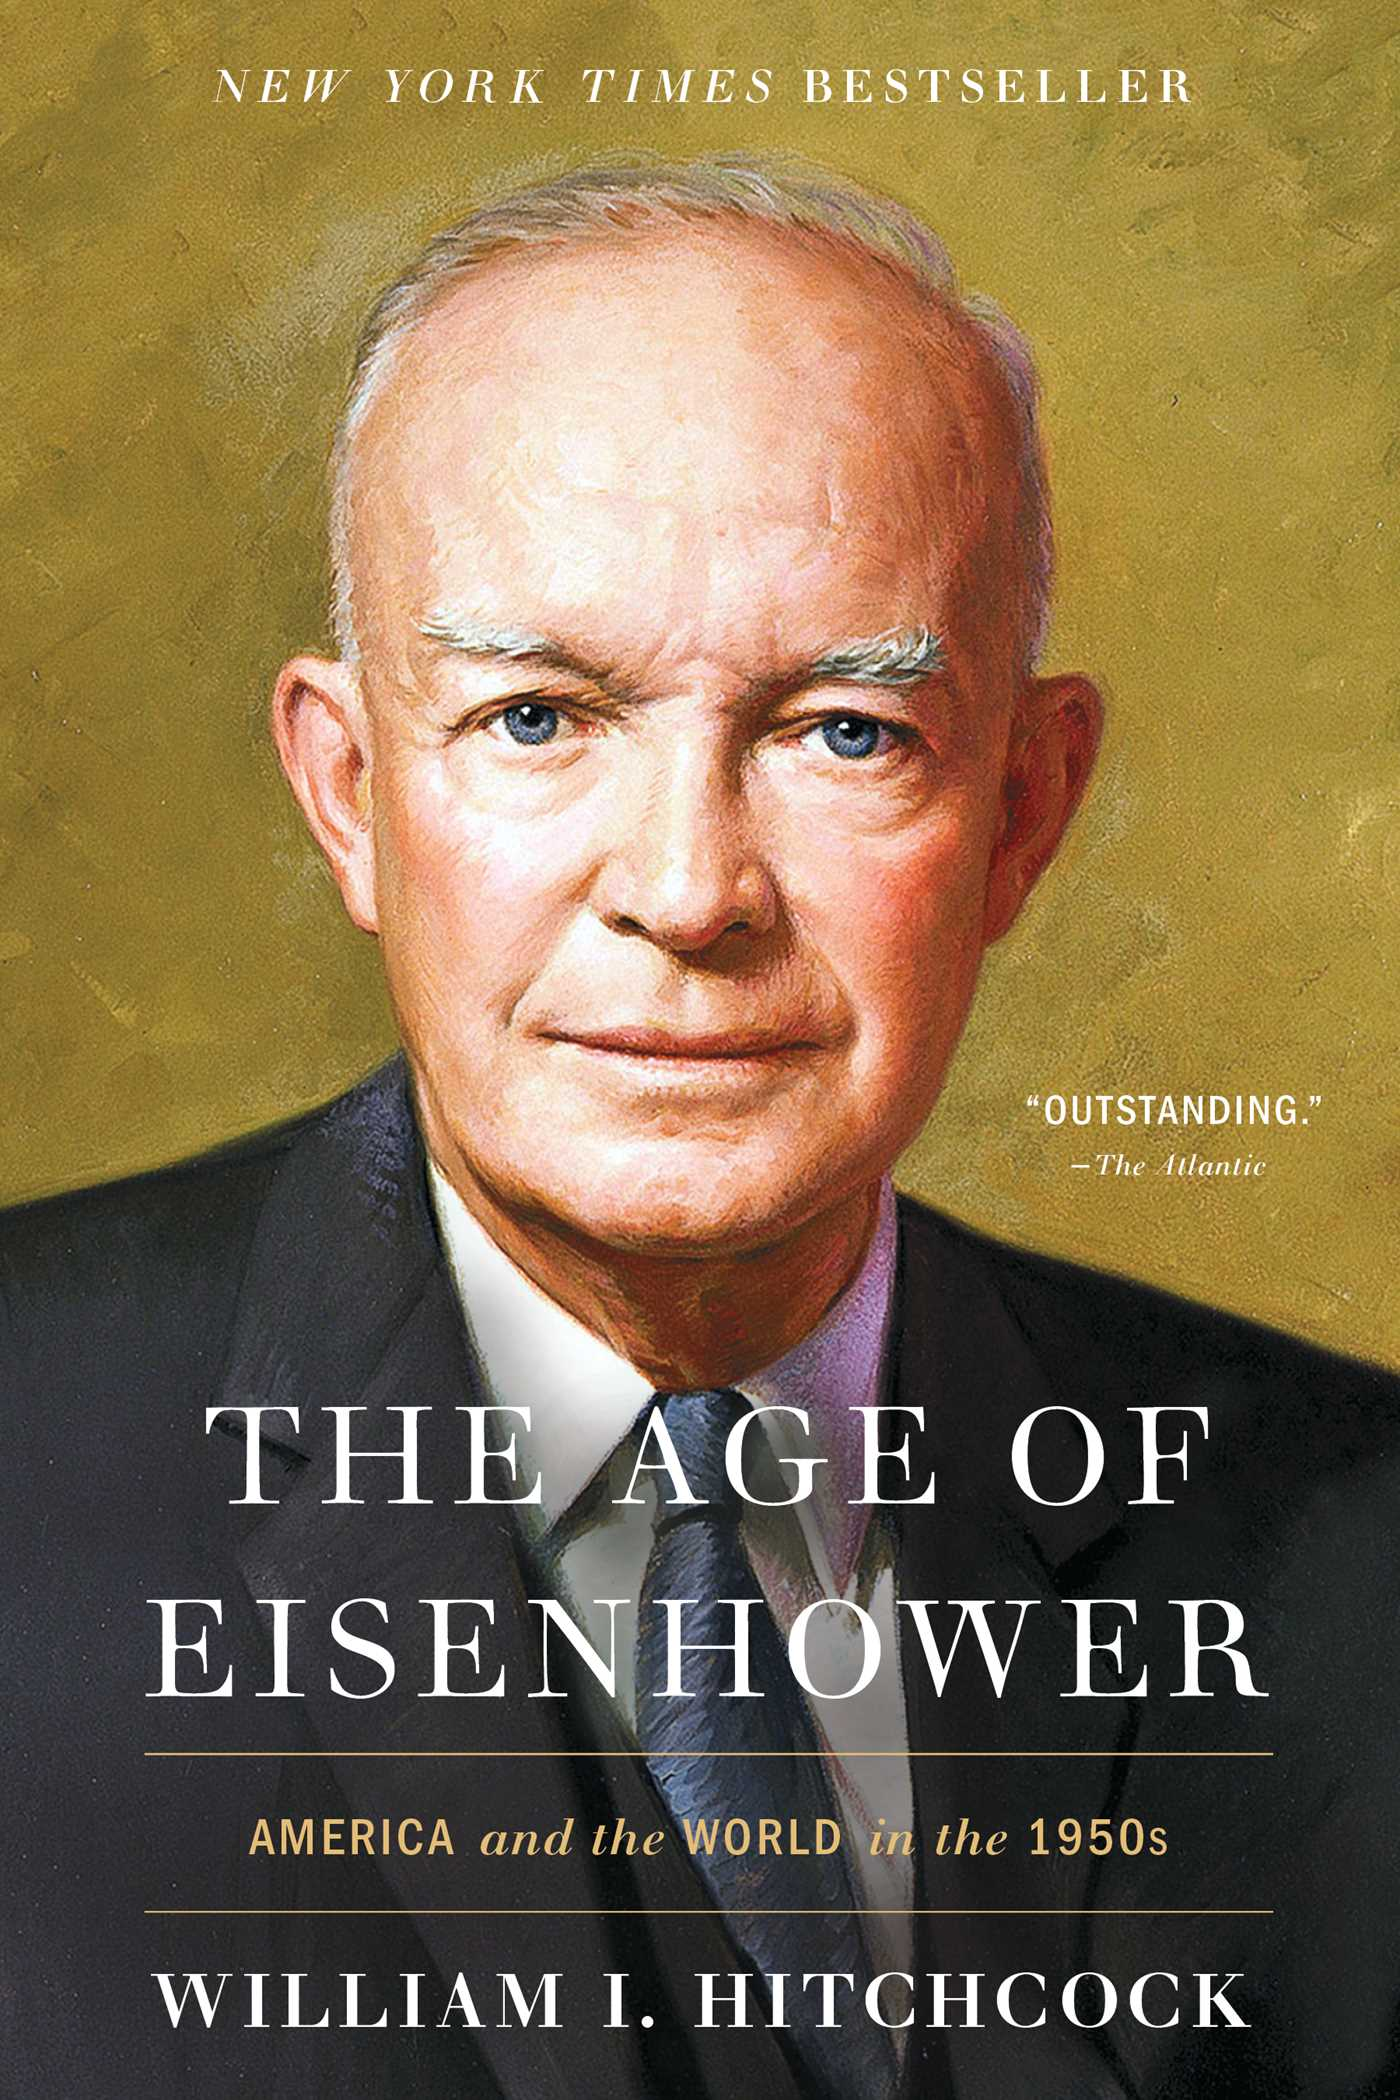 the advent of eisenhower The 'middle-of-the-road' years of the eisenhower presidency, 1955 h like the   broadcasting licenses importantly influenced the advent of rock music though in.